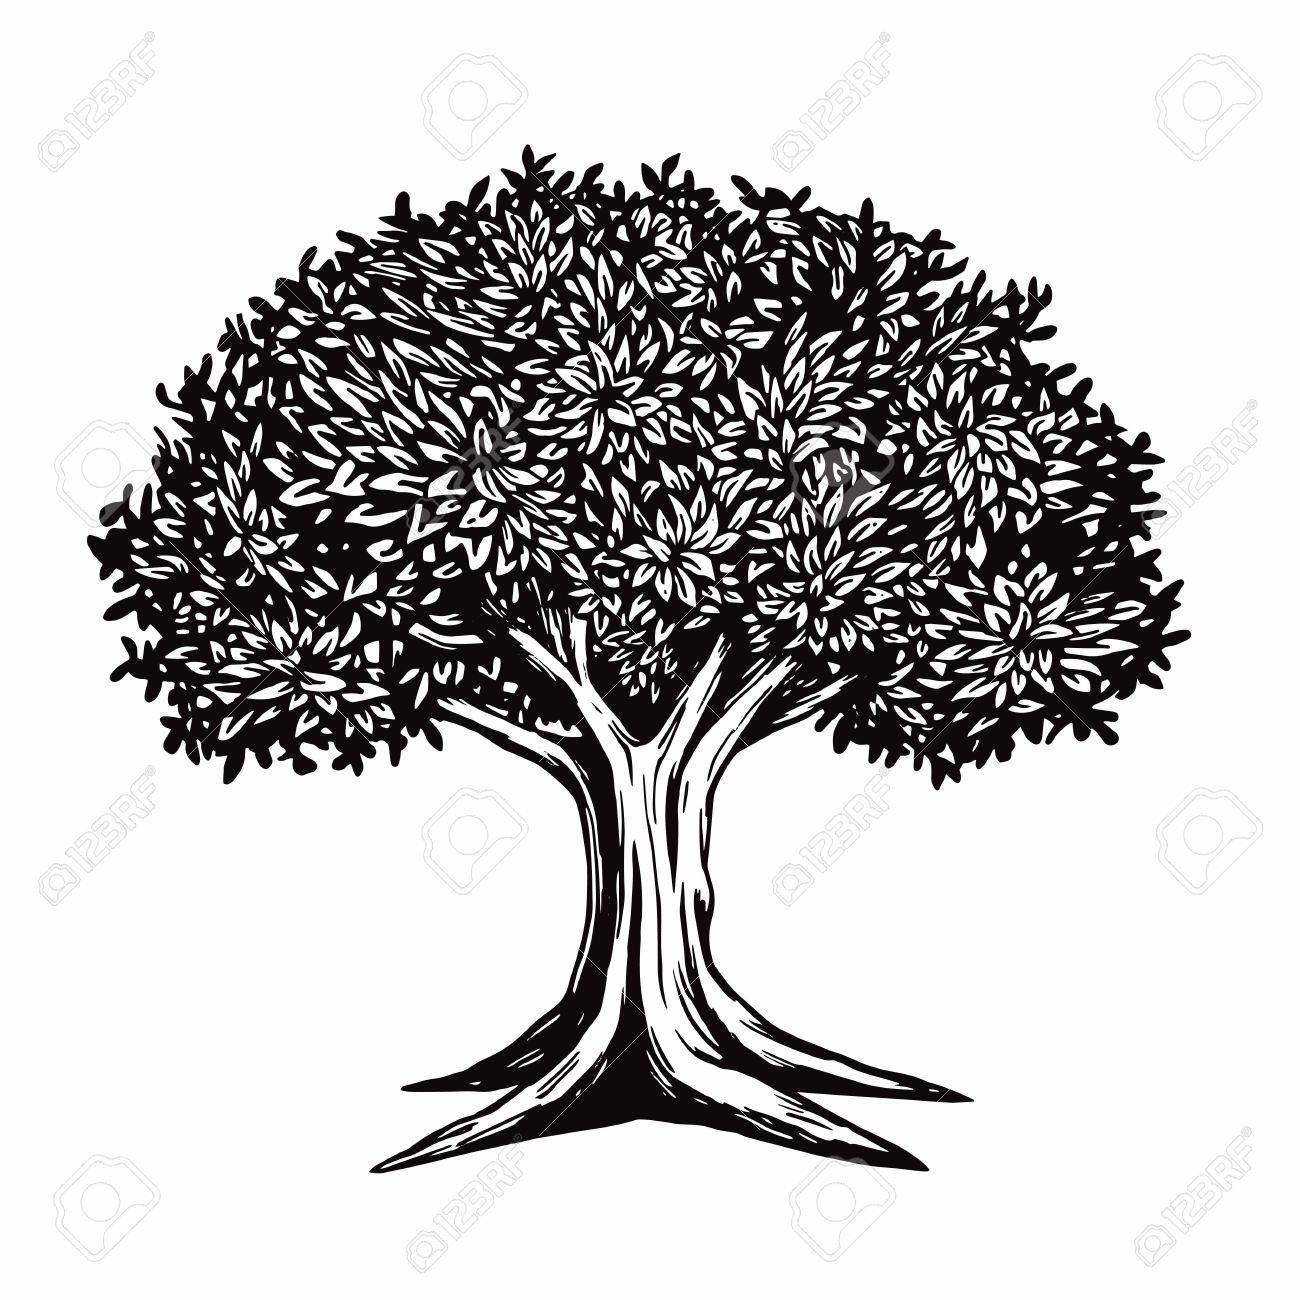 221 Tamarind Tree Stock Illustrations, Cliparts And Royalty Free ...